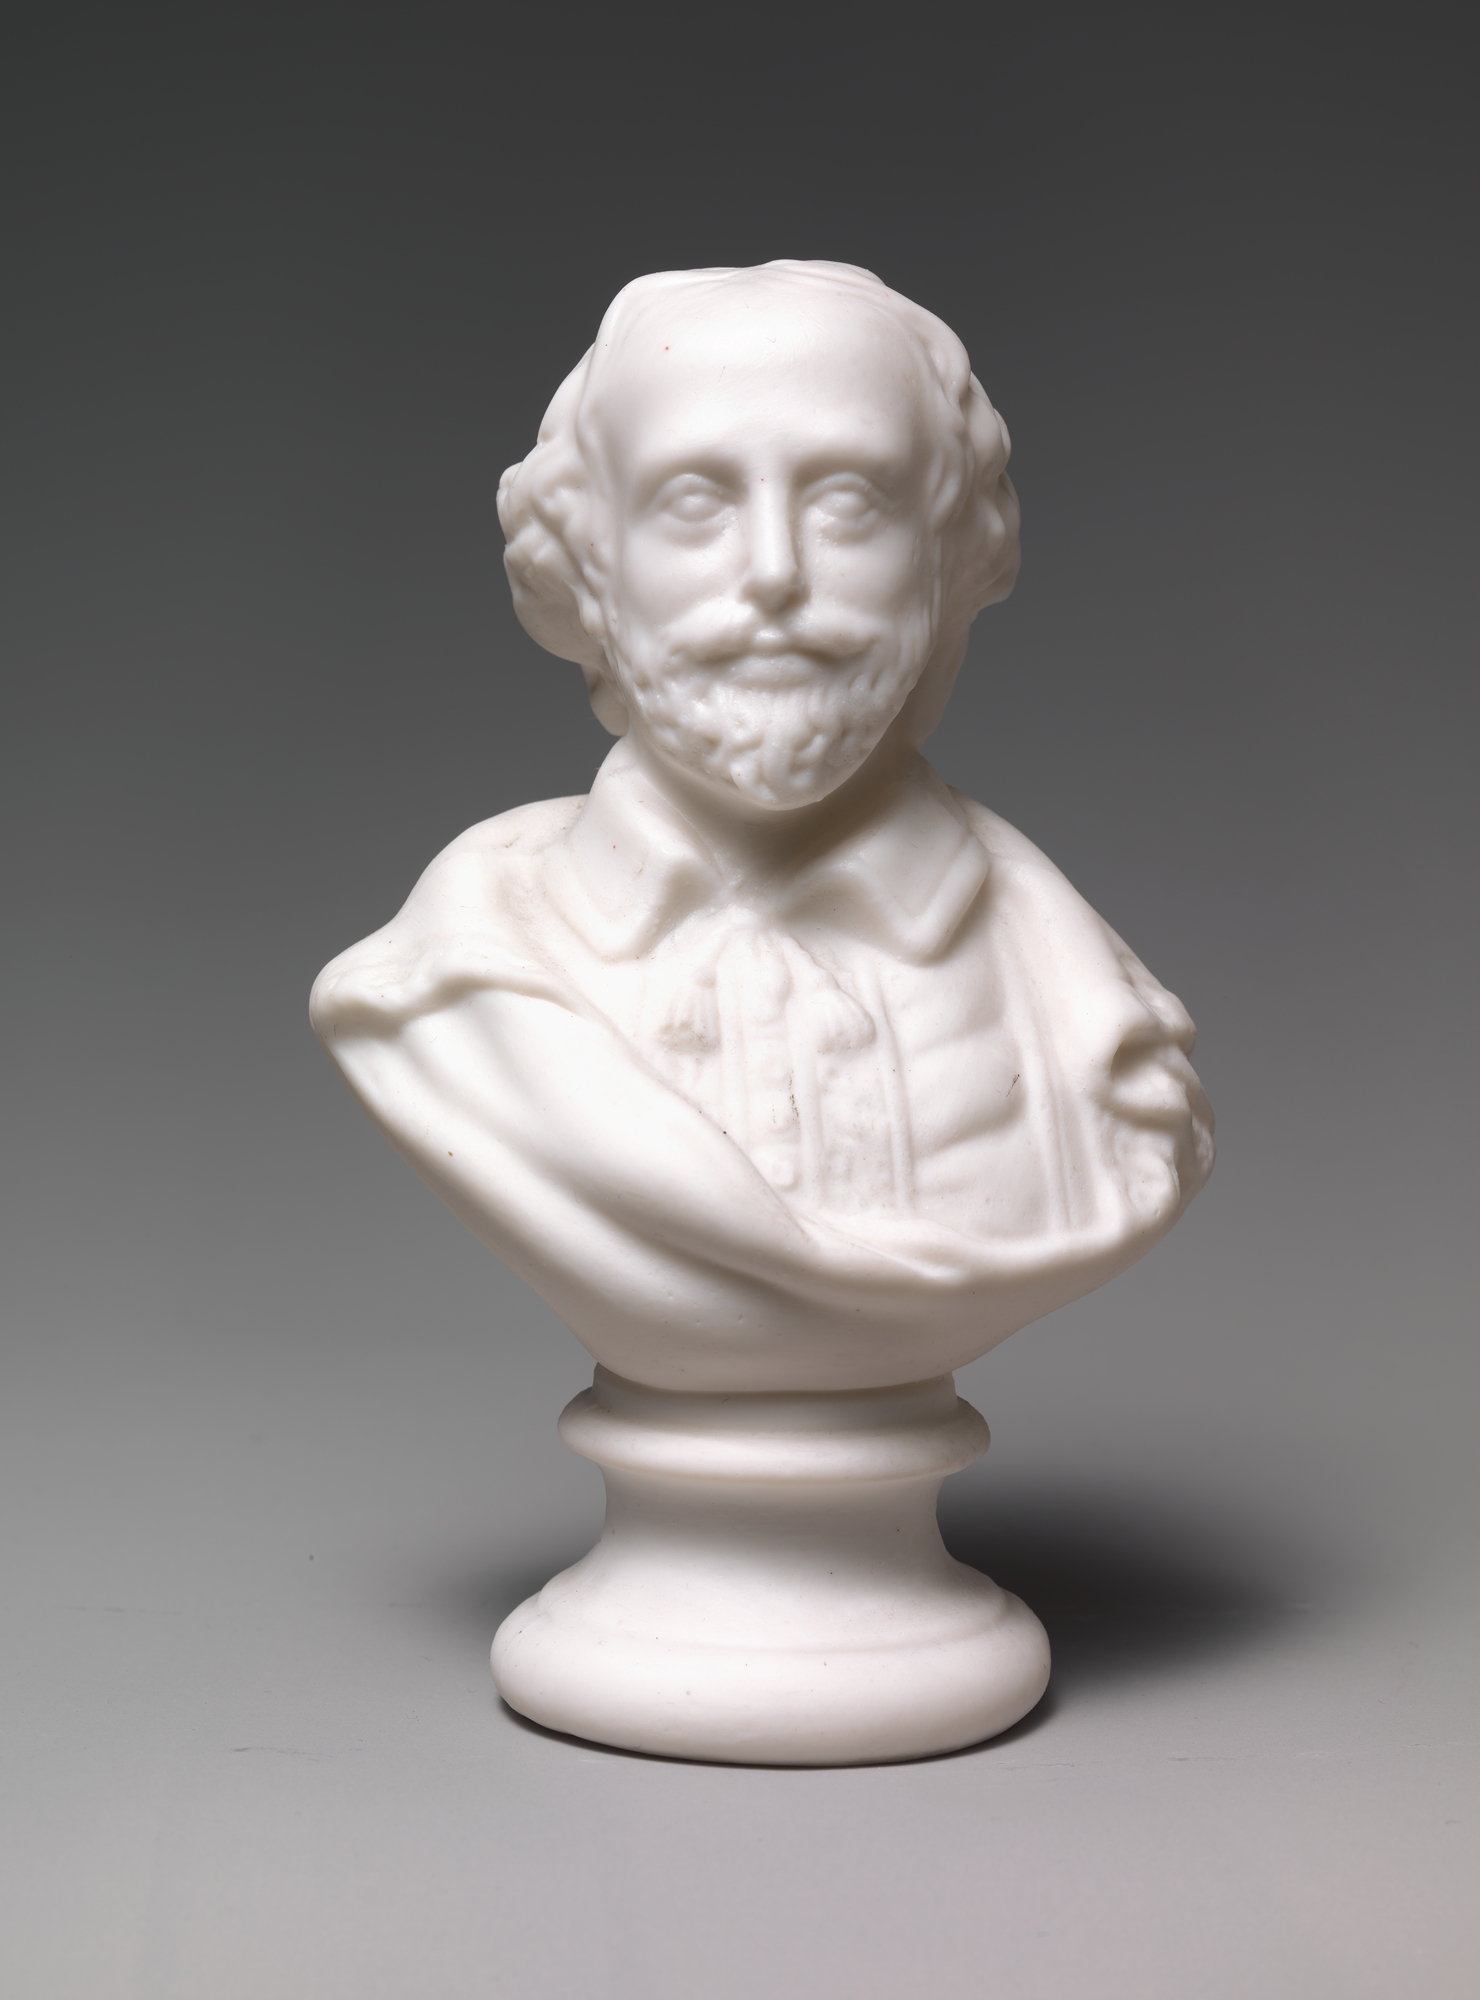 Bust of William Shakespeare (Parian porcelain,1830–70).  The Metropolitan Museum of Art , accession number 47.90.154. License: CC0 1.0.